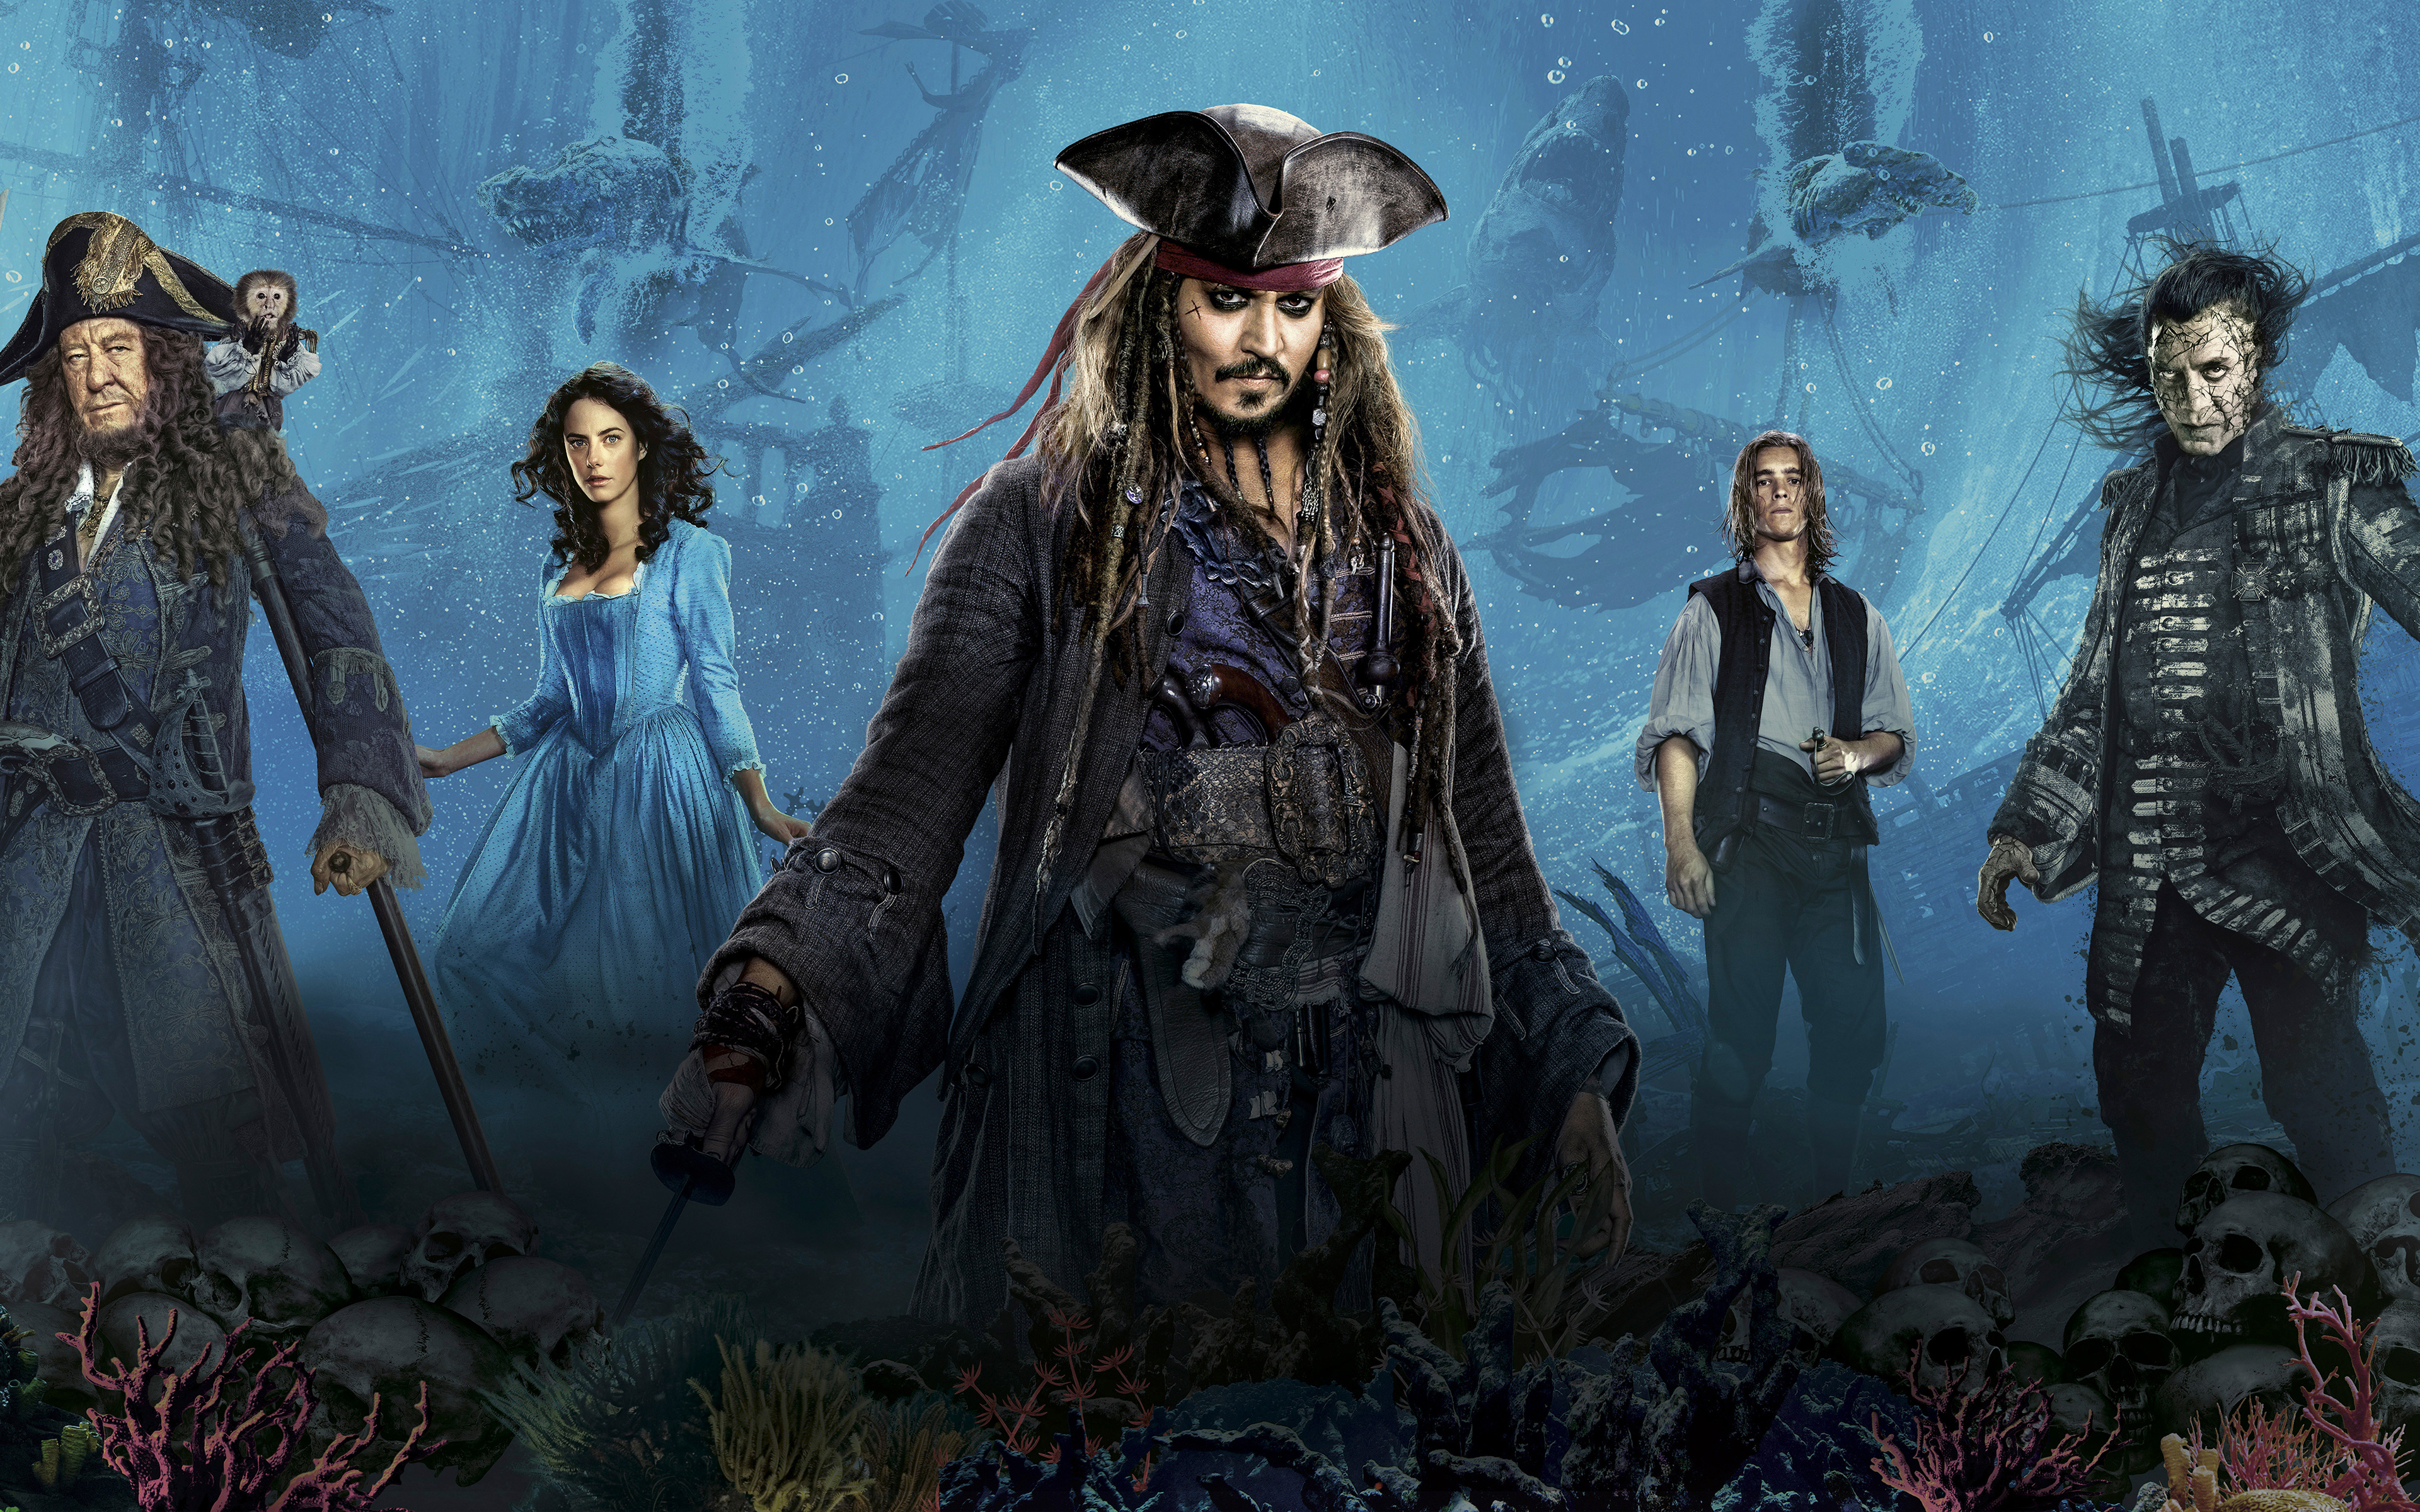 Pirates of the caribbean 5 dead men tell no tales. обои скачать